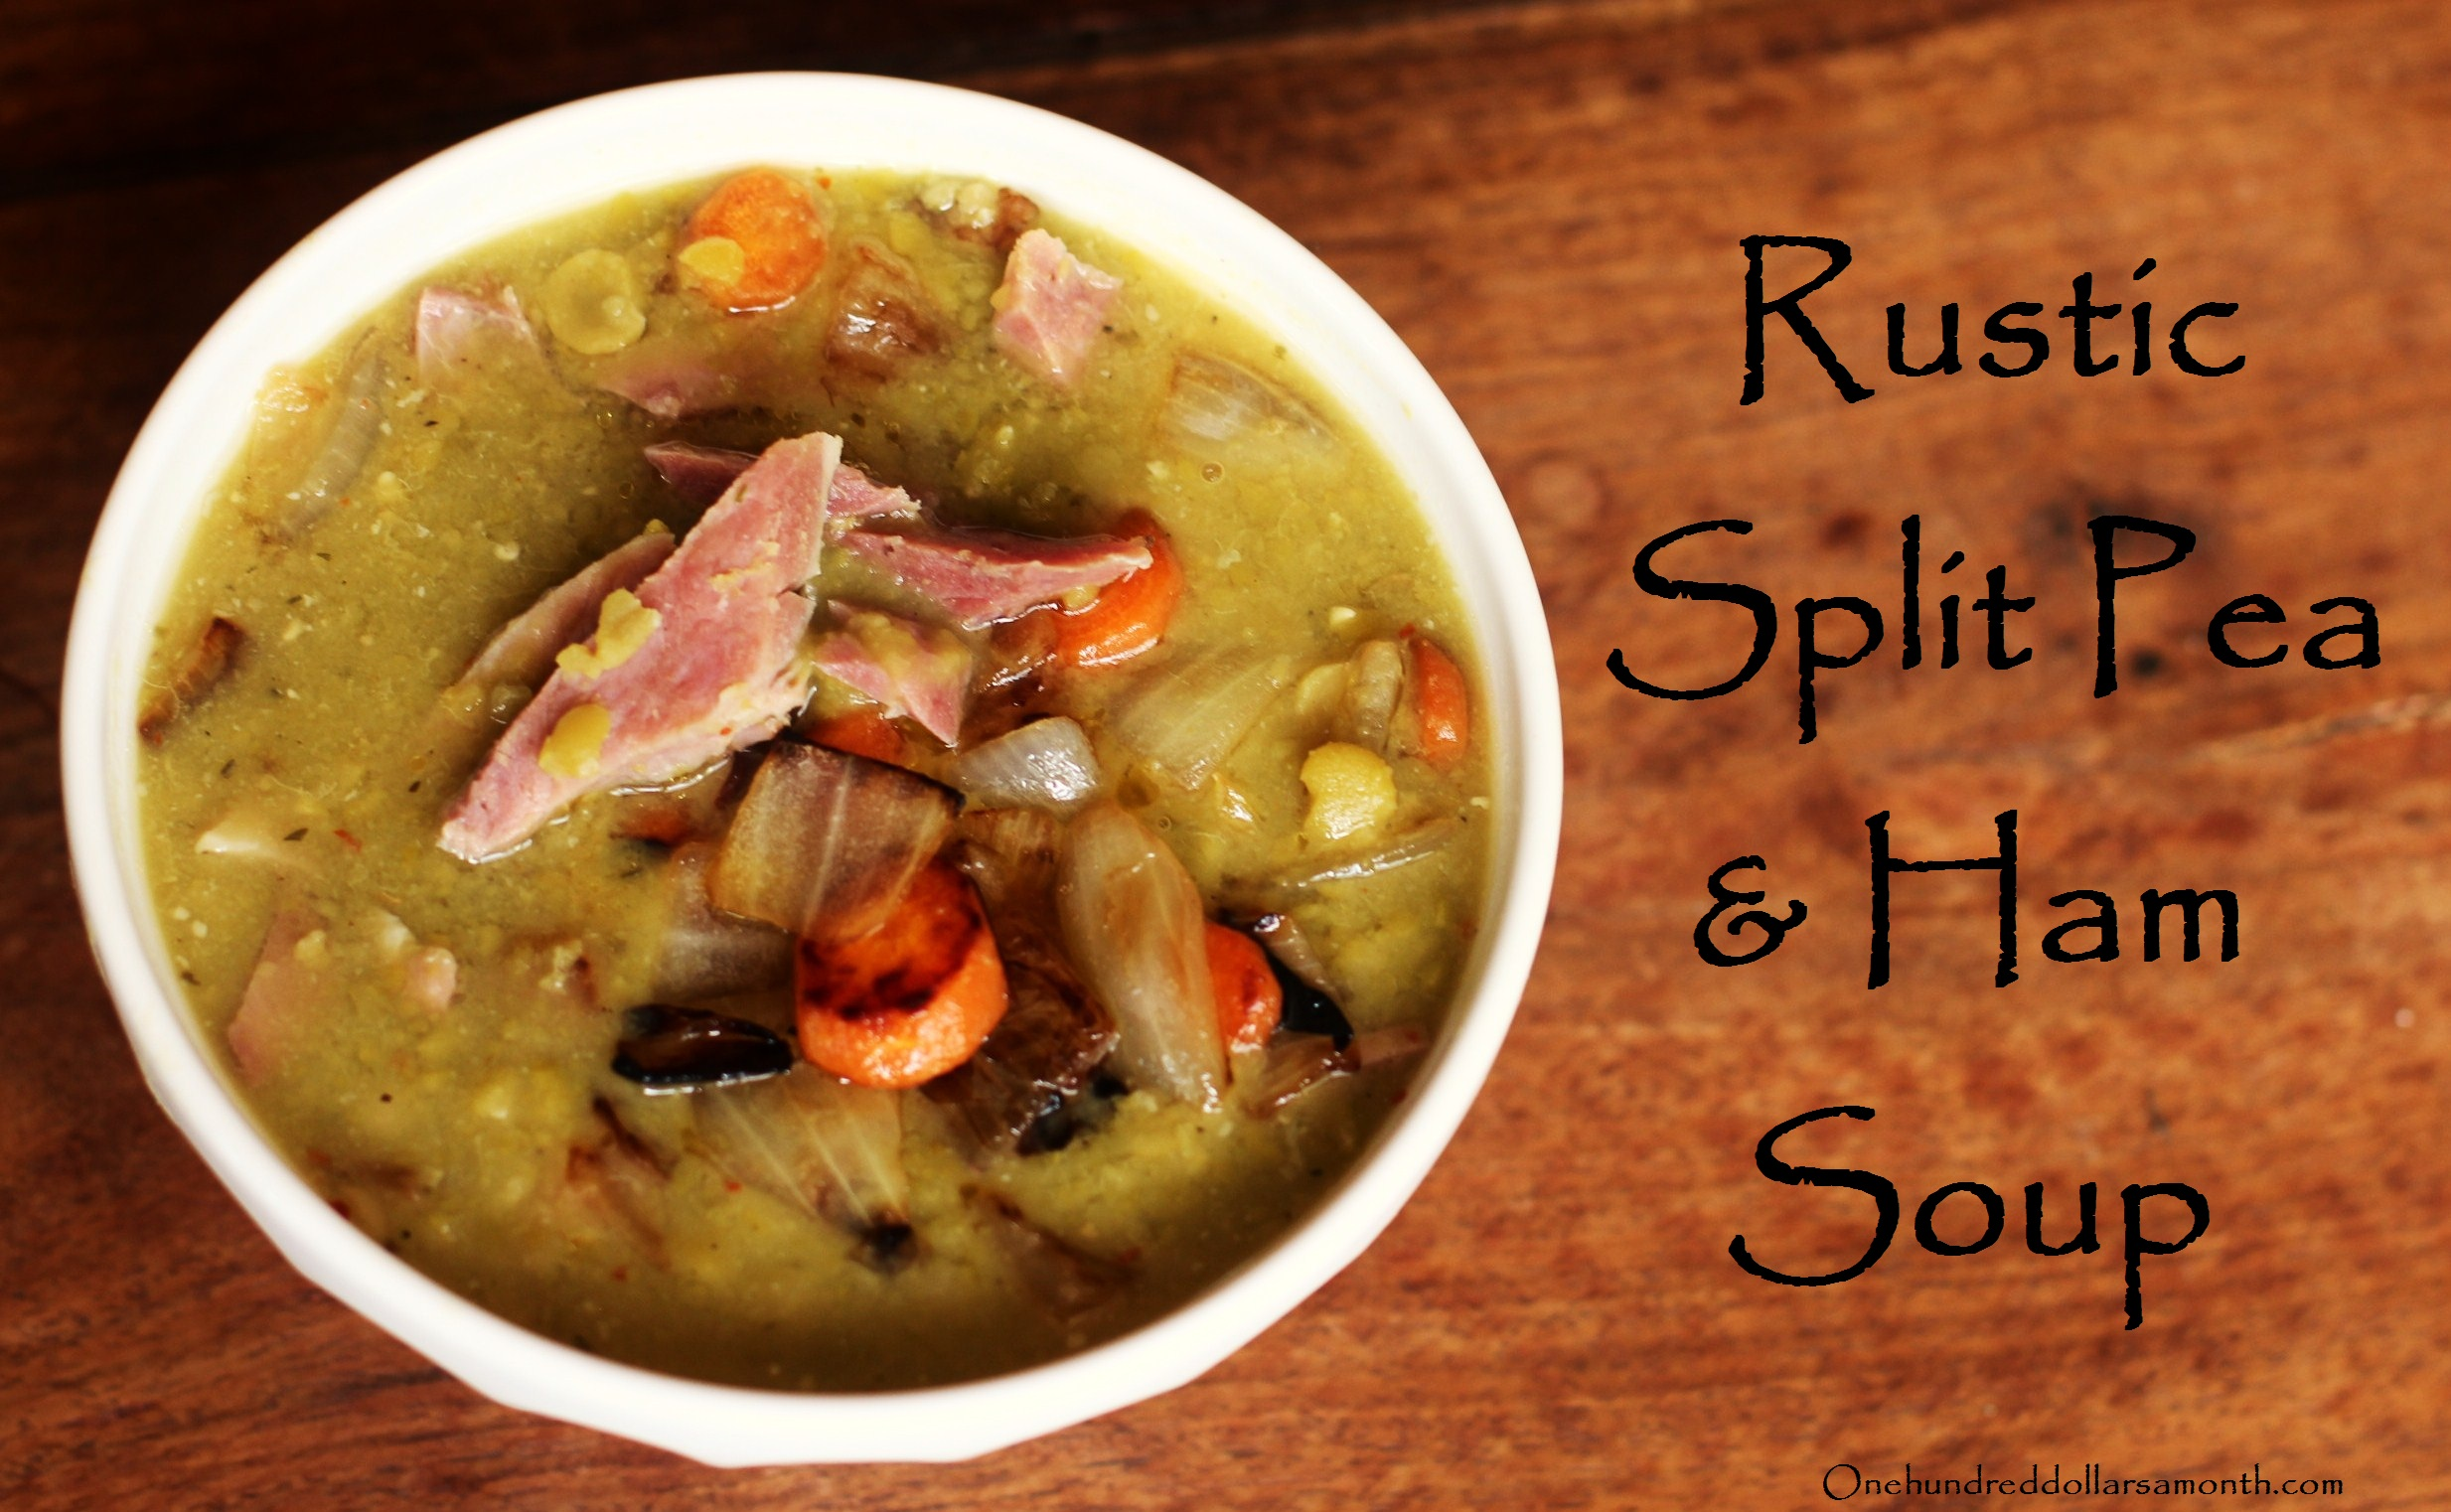 Recipe: Rustic Split Pea Soup With Ham